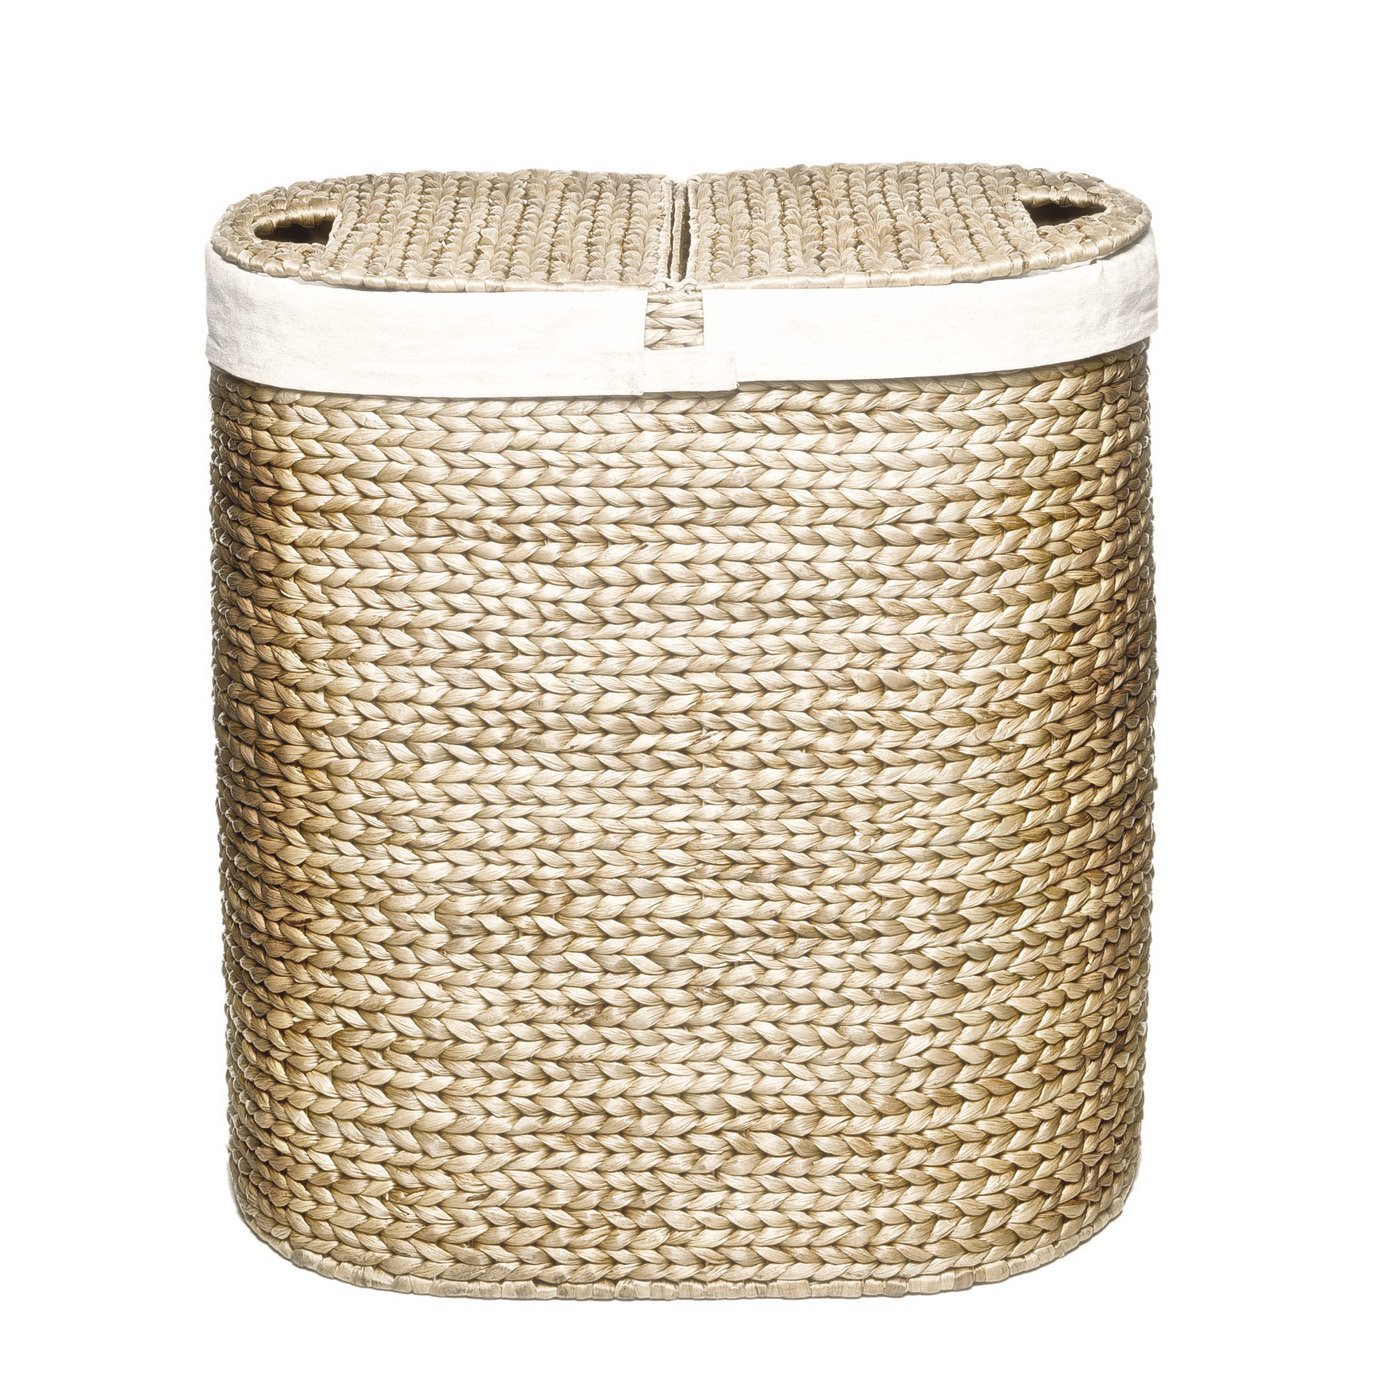 Decorative Laundry Baskets 14 Best Wicker Hampers In 2018 Decorative Woven And Wicker